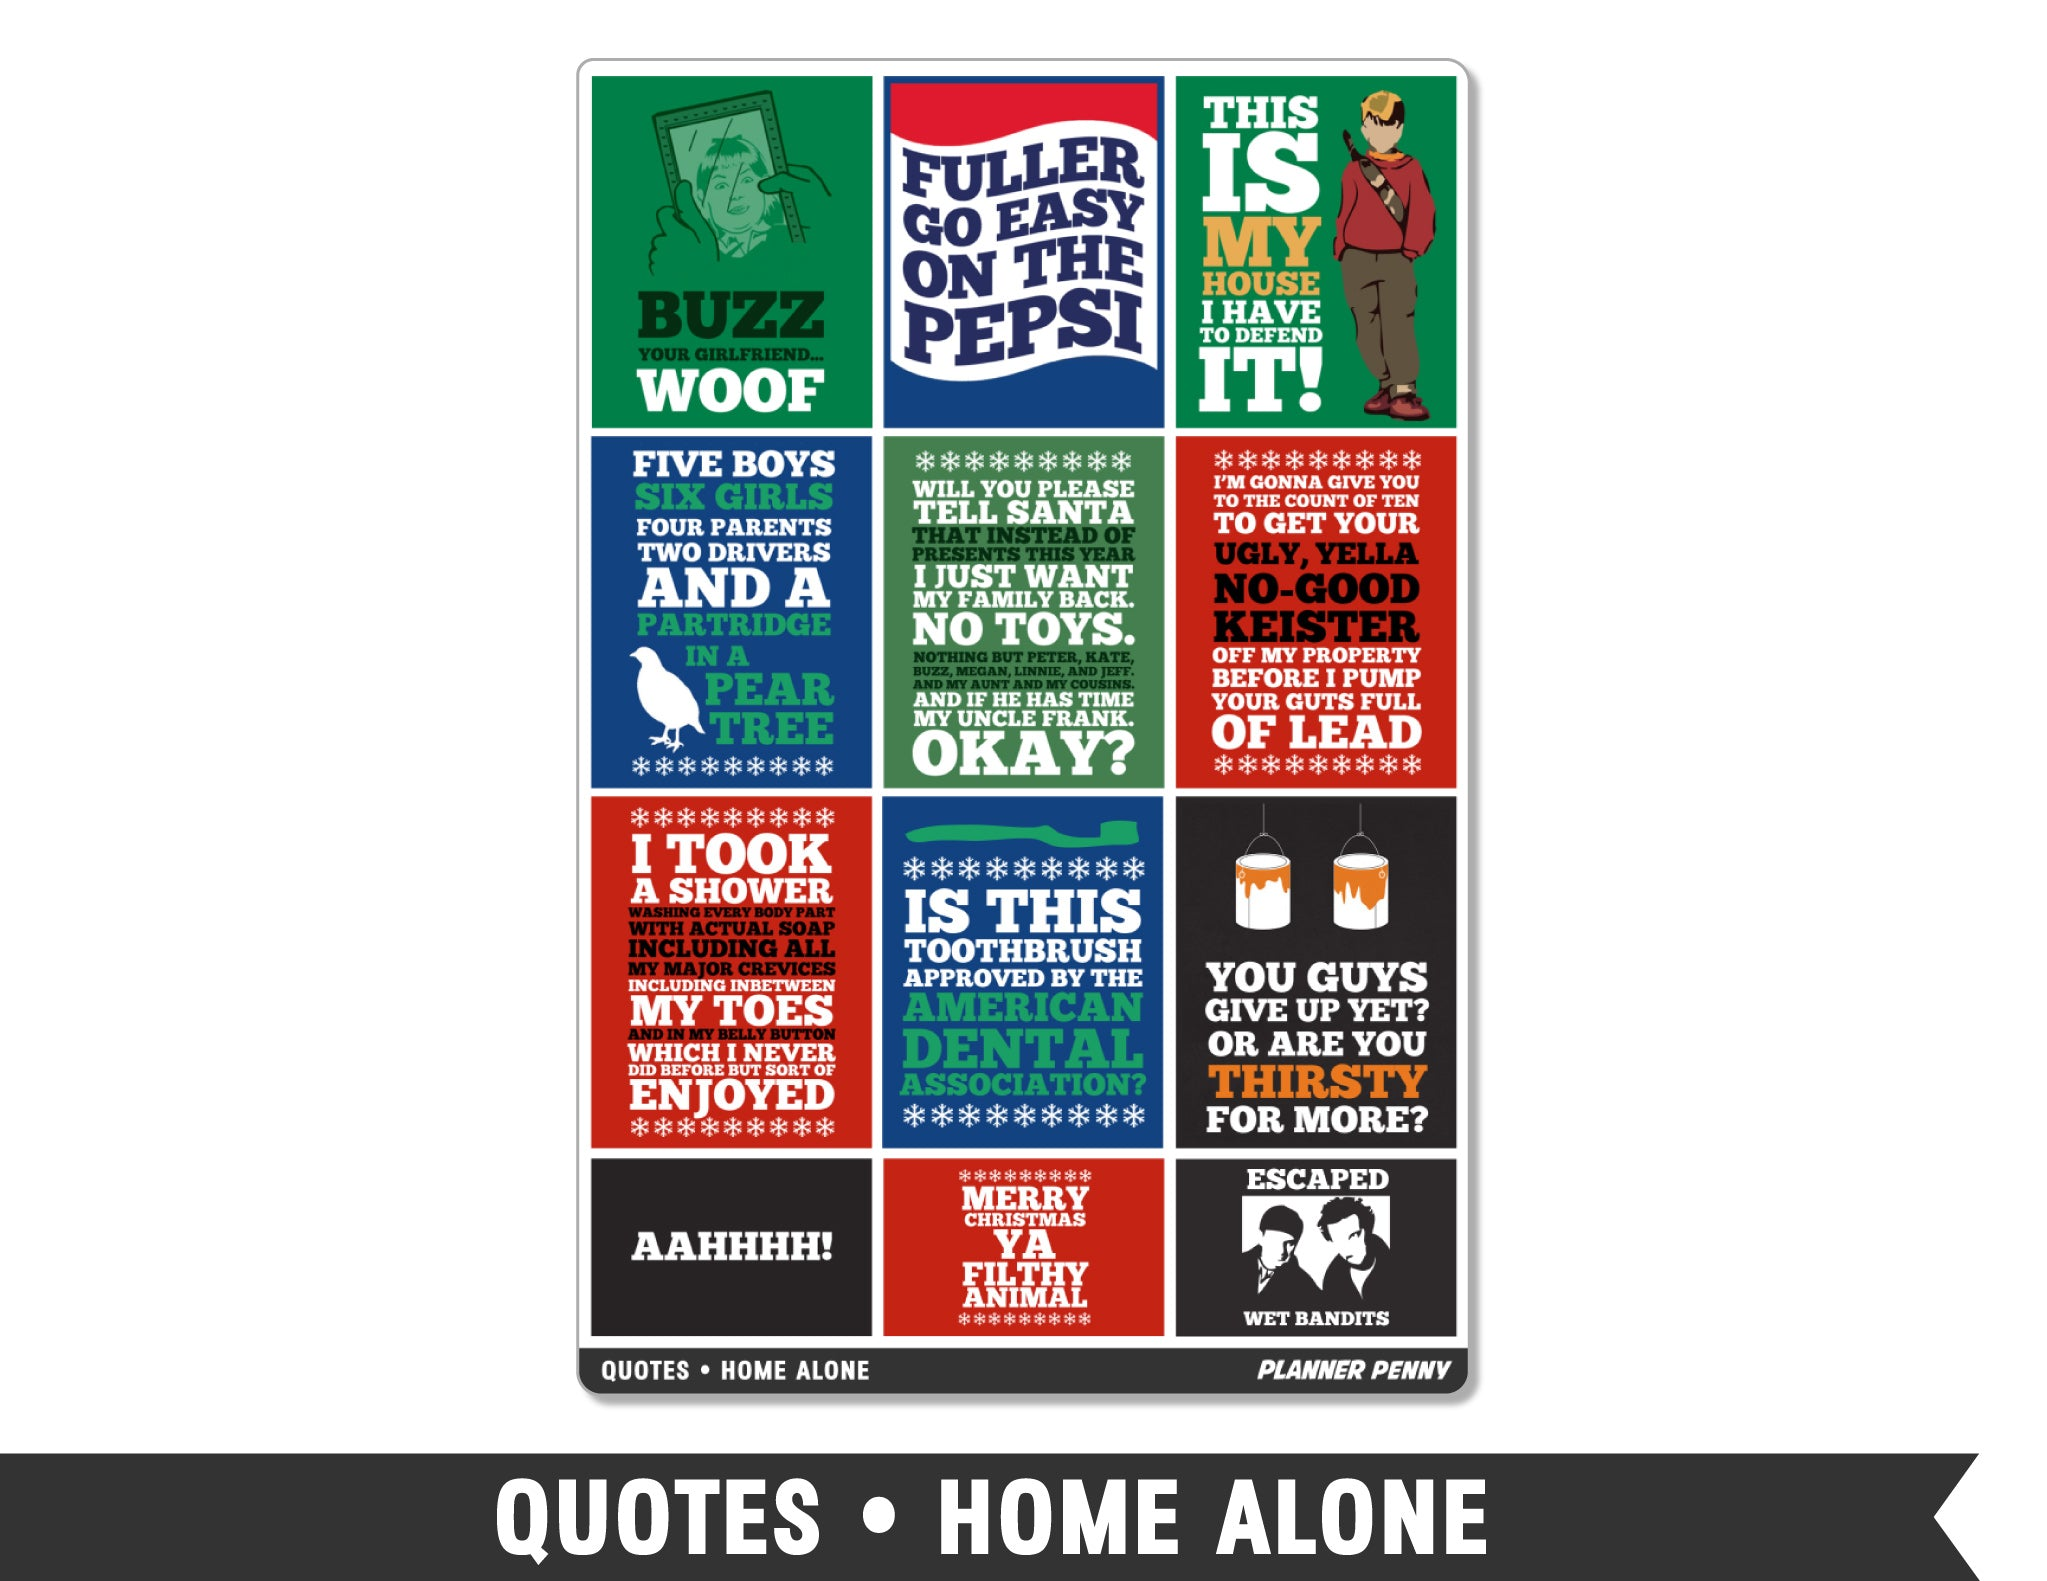 Quotes • Home Alone Full Box Planner Stickers